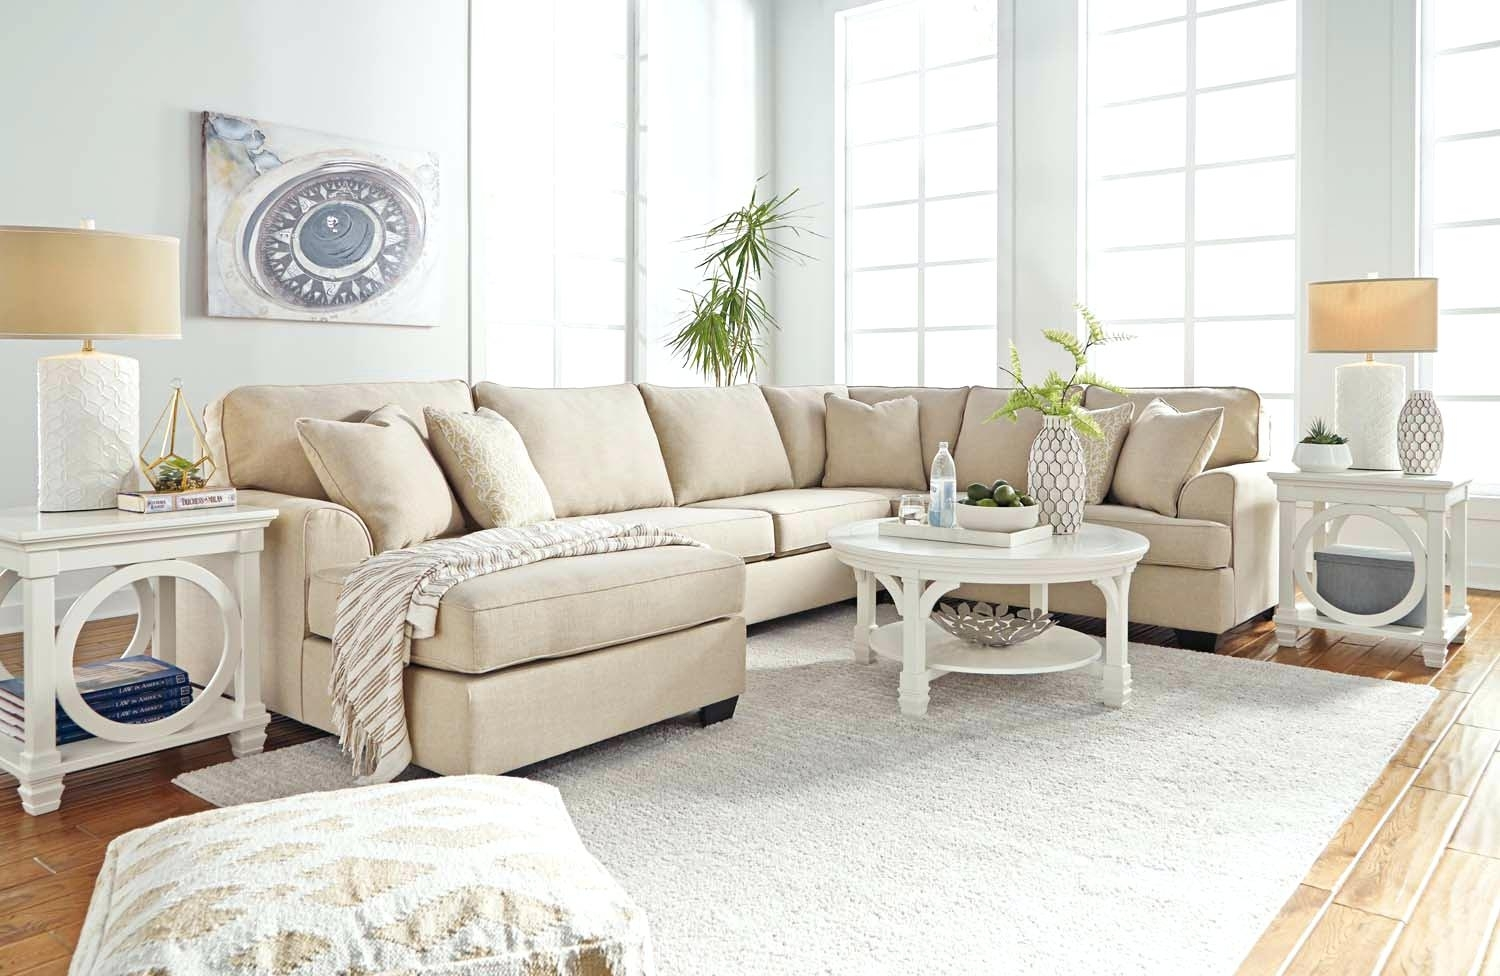 3 Piece Sectional Haven Blue Steel 3 Piece Sectional 3 Pc Reclining with regard to Haven Blue Steel 3 Piece Sectionals